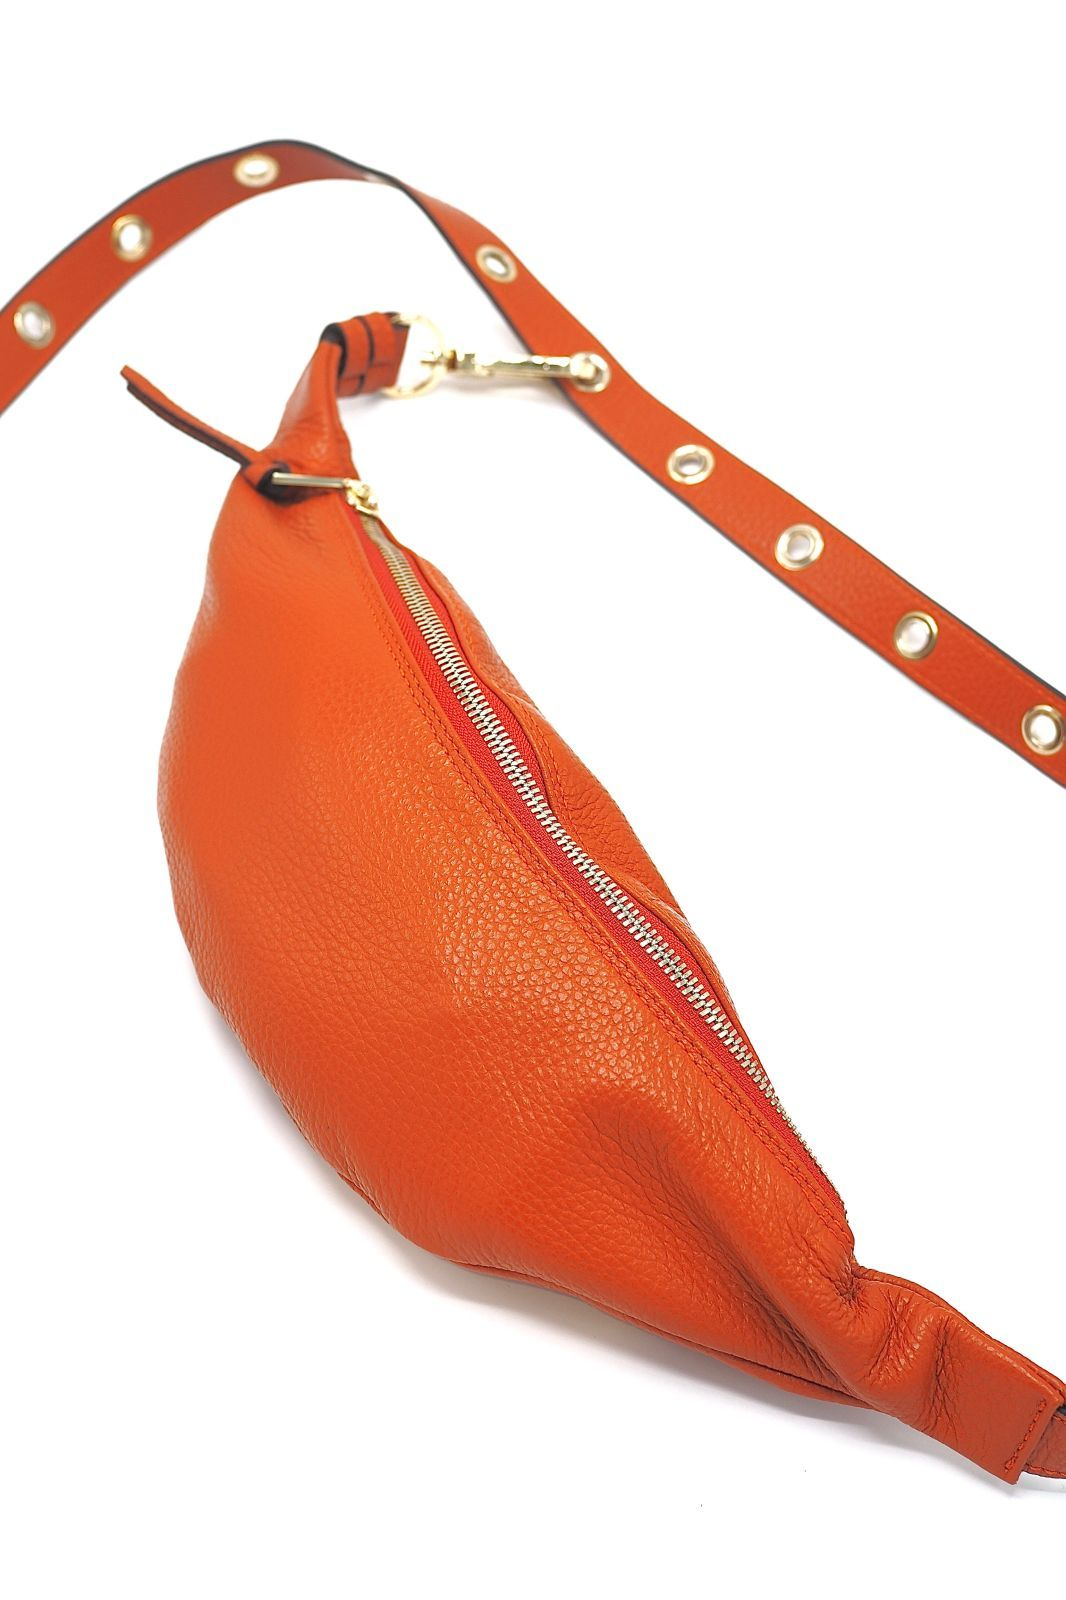 Abro+ sac Orange femmes (Abro-Banane simple °°° - 028605 Banane orange) - Marine | Much more than shoes